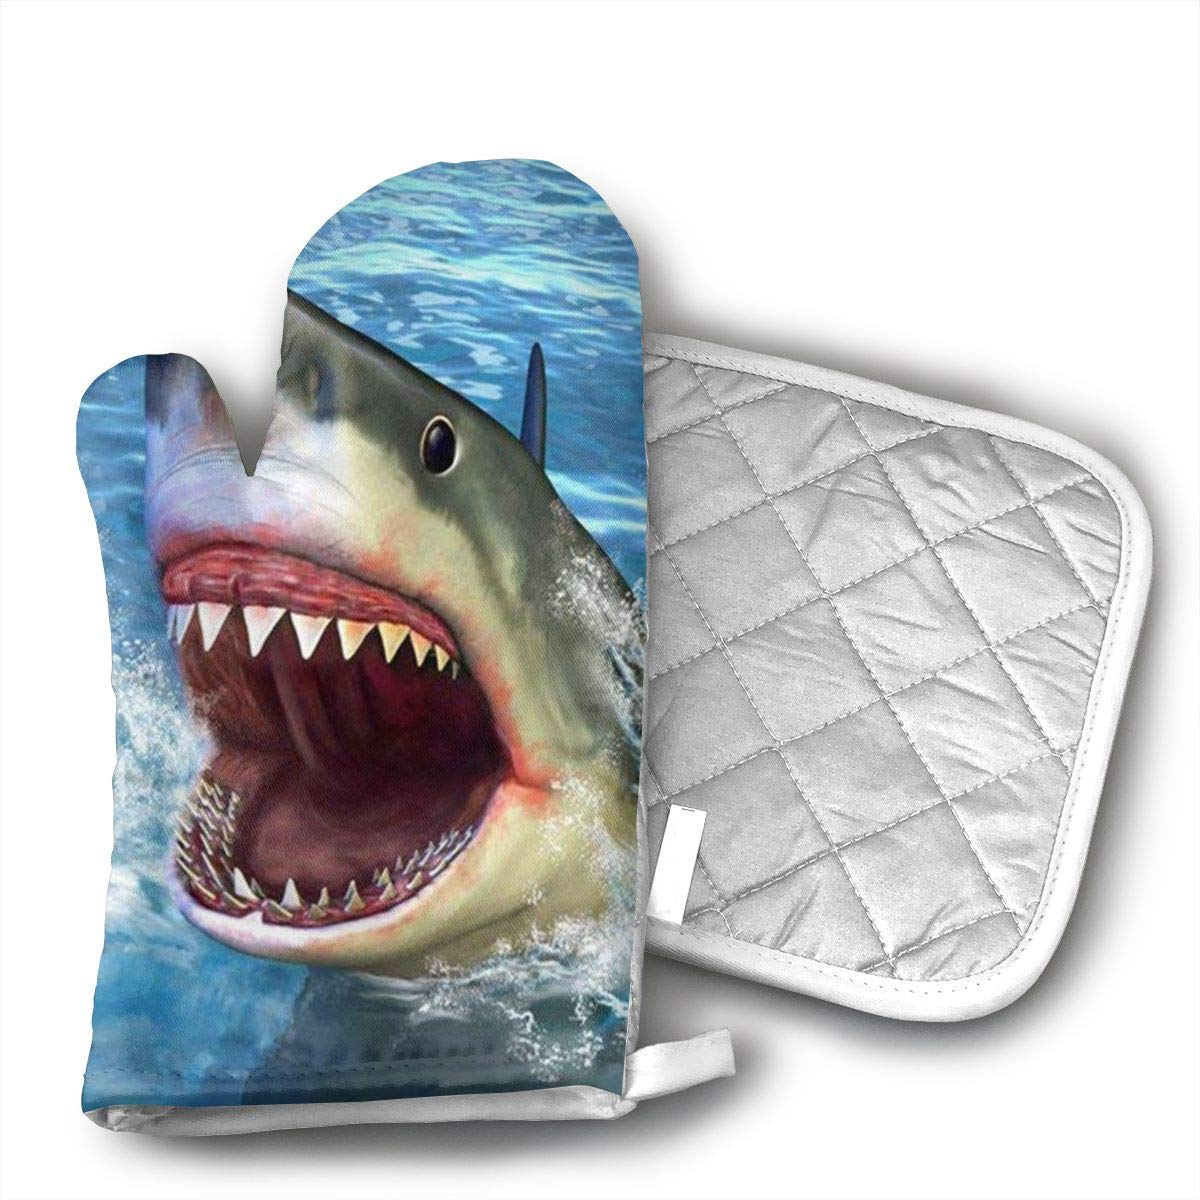 Blue Shark Cotton Puppet Oven Mitts and Pot Holder Kitchen Set with Neoprene Non-Slip Grip, Heat Resistant, Oven Gloves and Pot Holders Set for BBQ Cooking Baking, Grilling,Machine Washable.